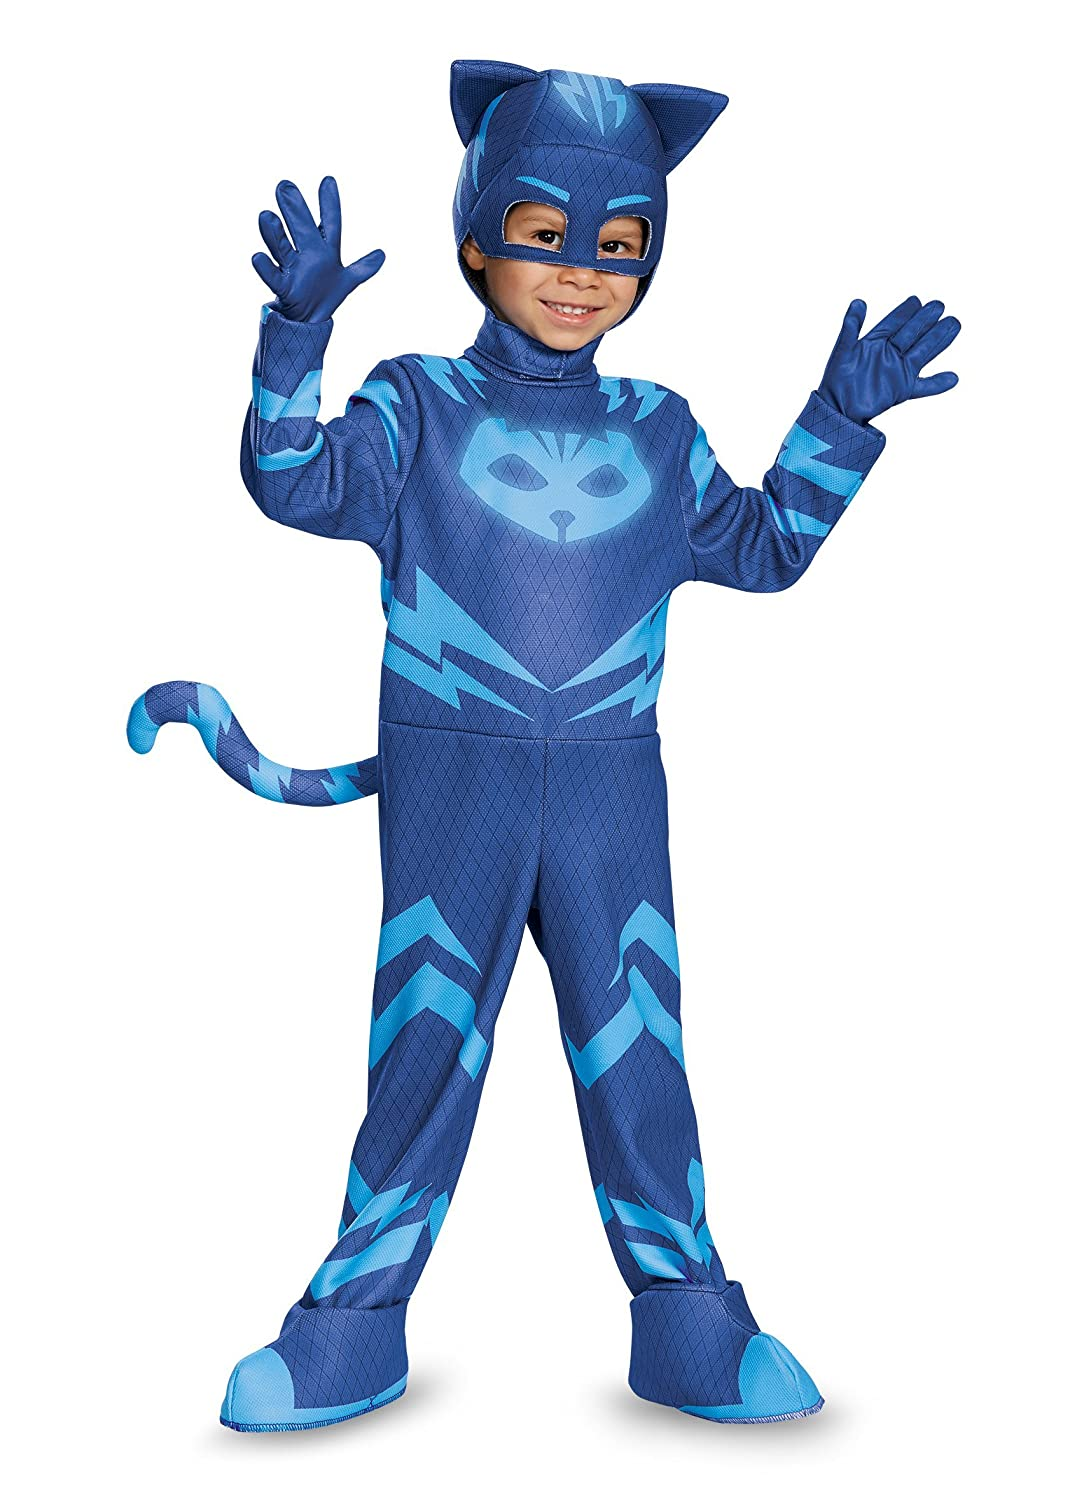 Catboy Deluxe Toddler PJ Masks Costume, Large/4-6 17159L